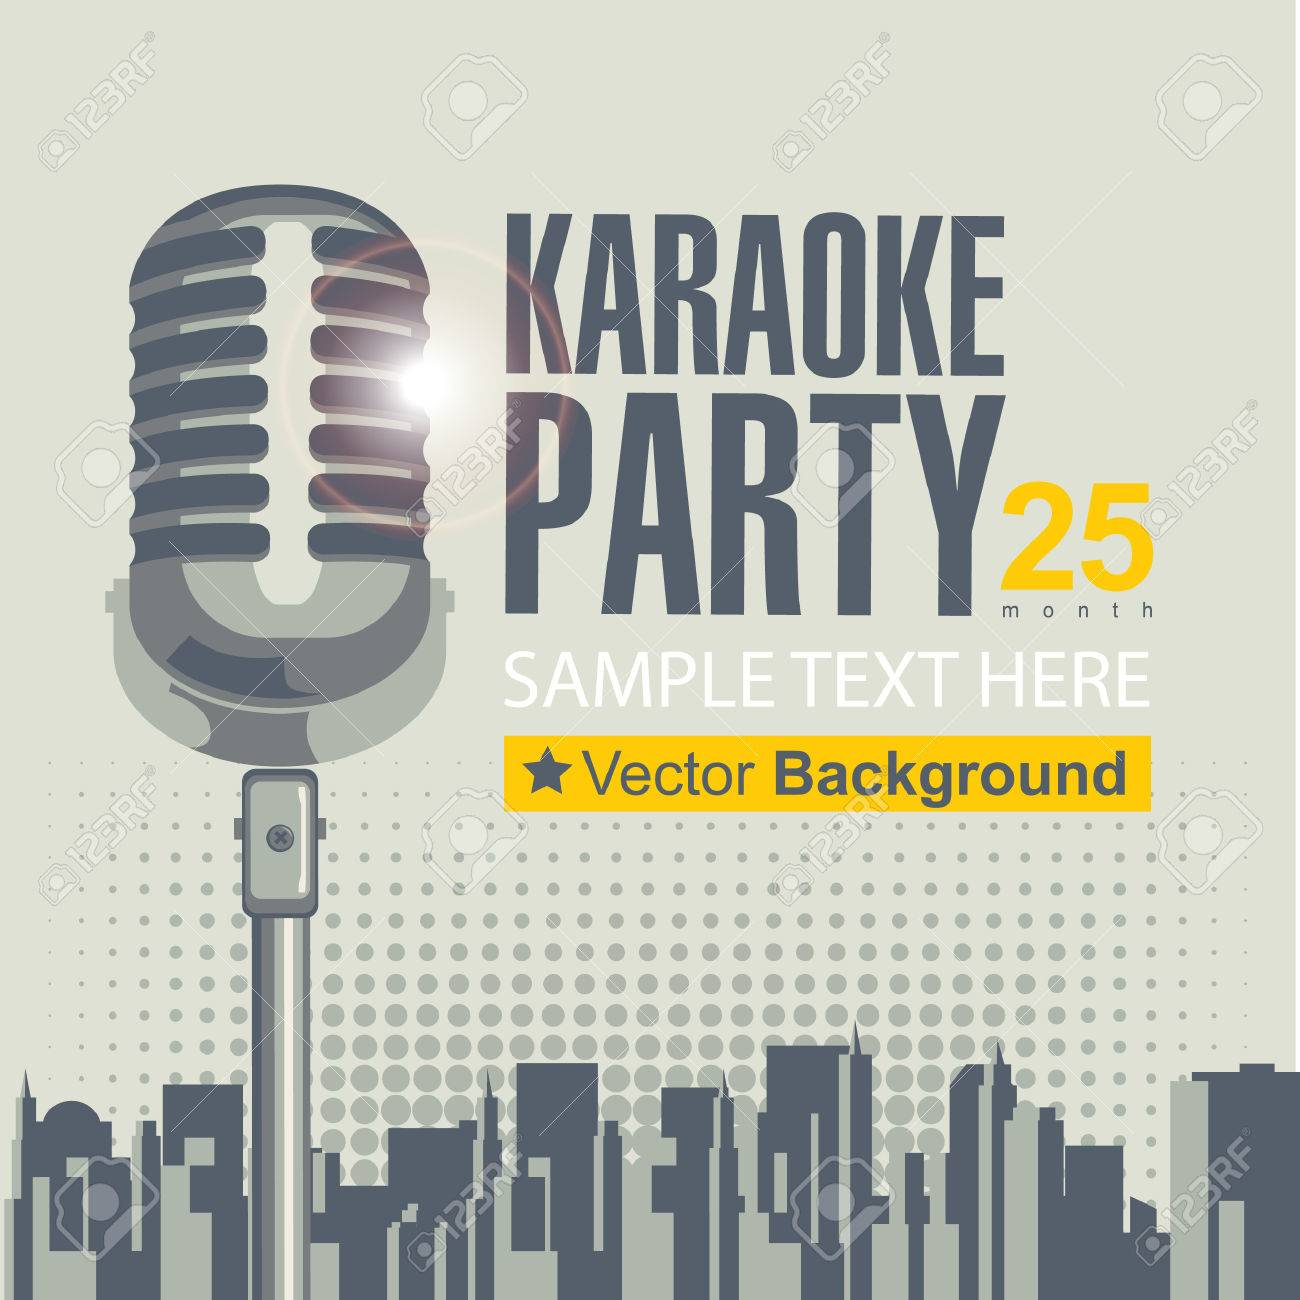 banner with microphone for karaoke parties over modern city background - 27535834